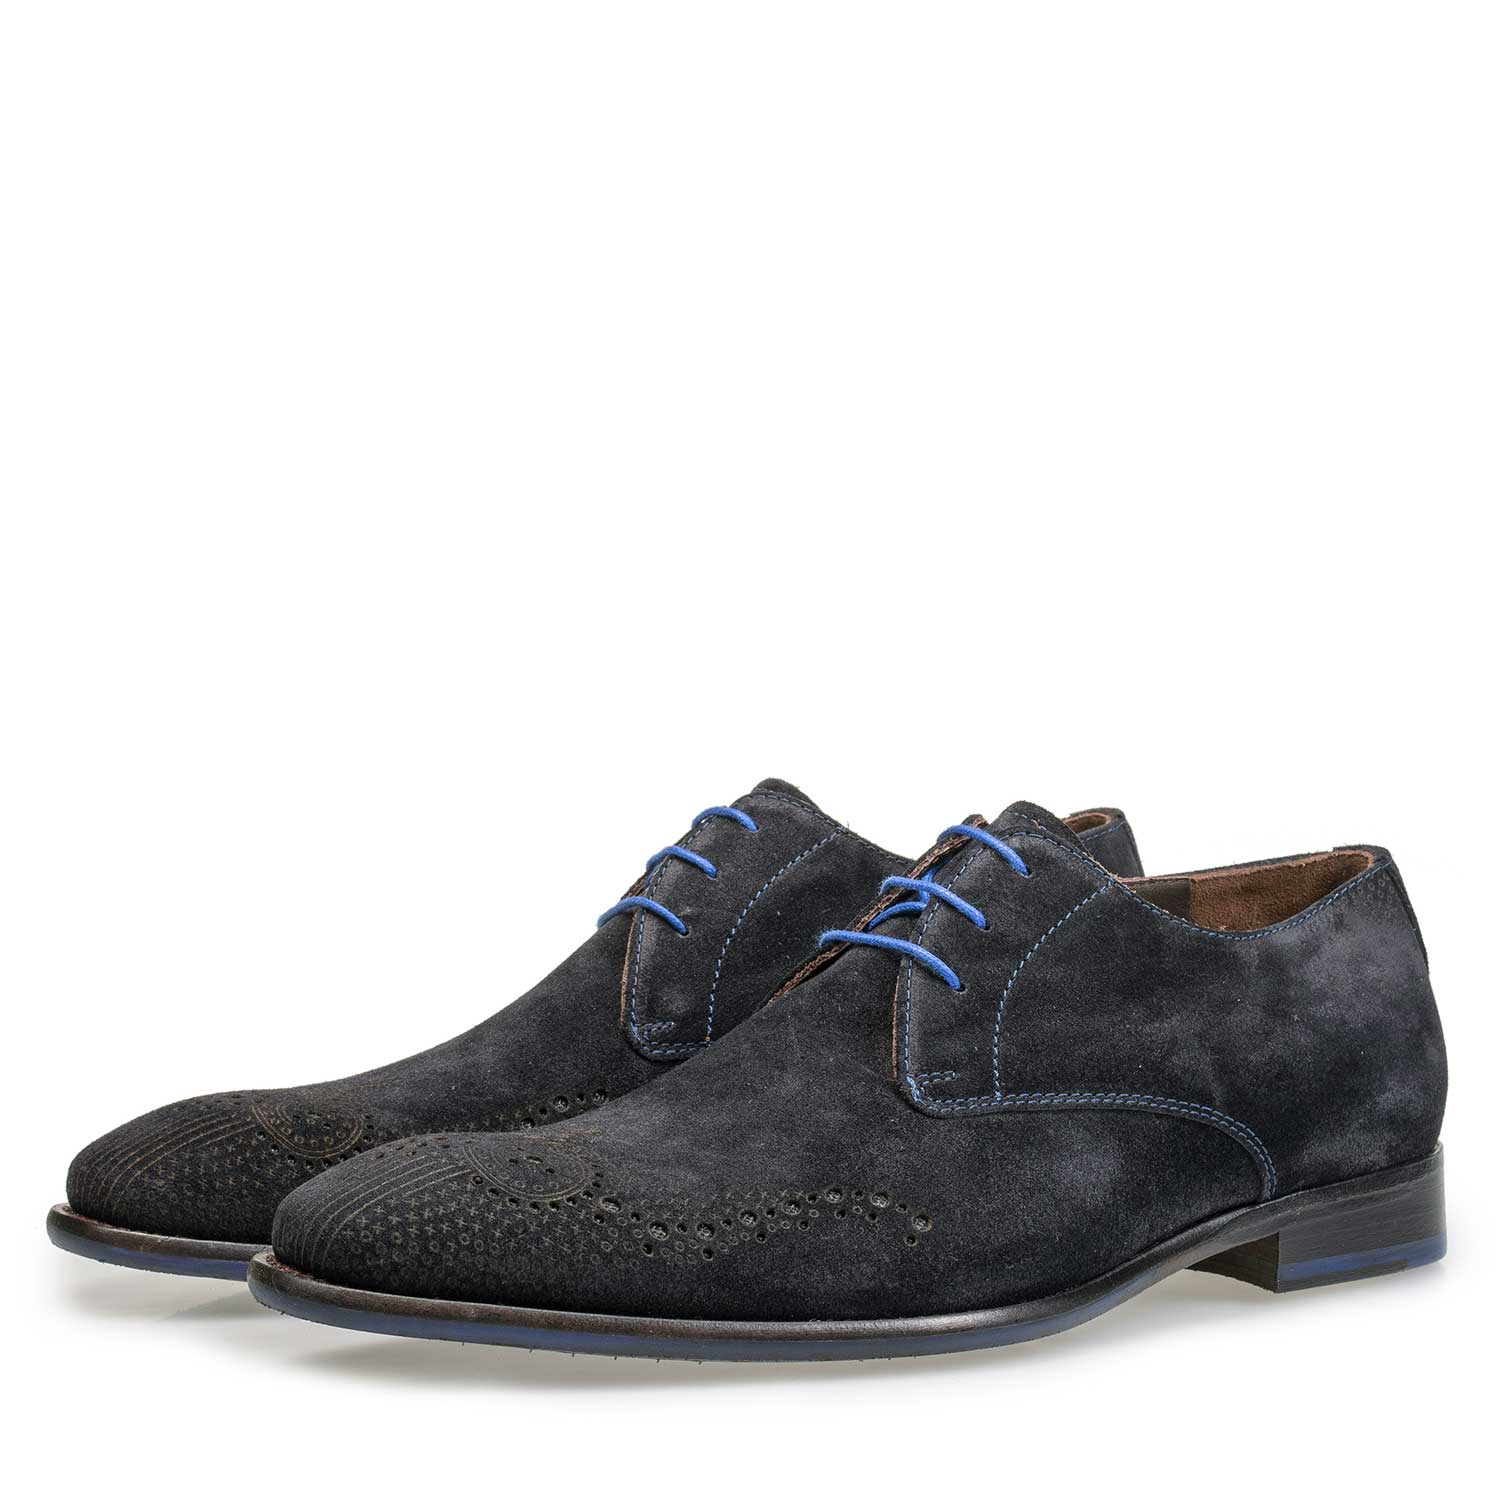 18075/06 - Blue suede leather shoe with brogue perforations